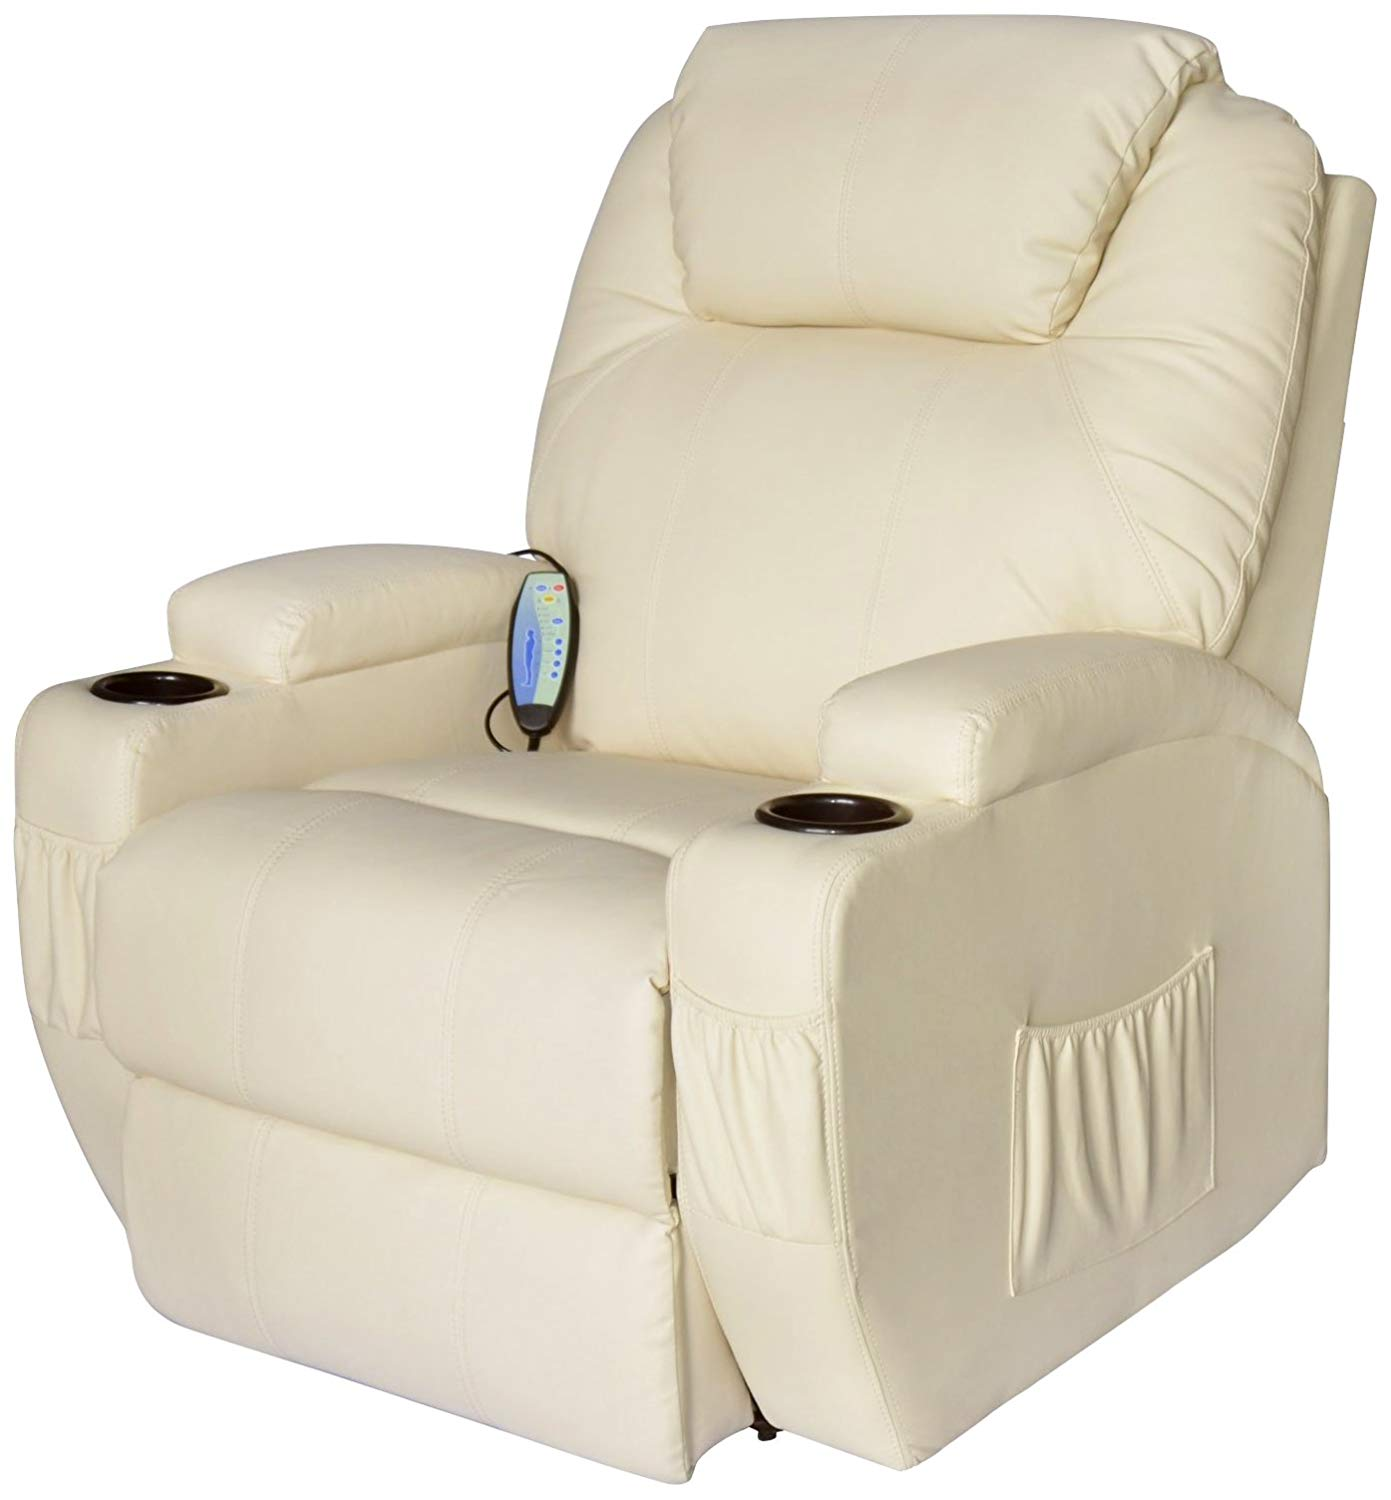 Homcom Luxury Heated Vibrating Faux Leather Recliner sofa with Remote